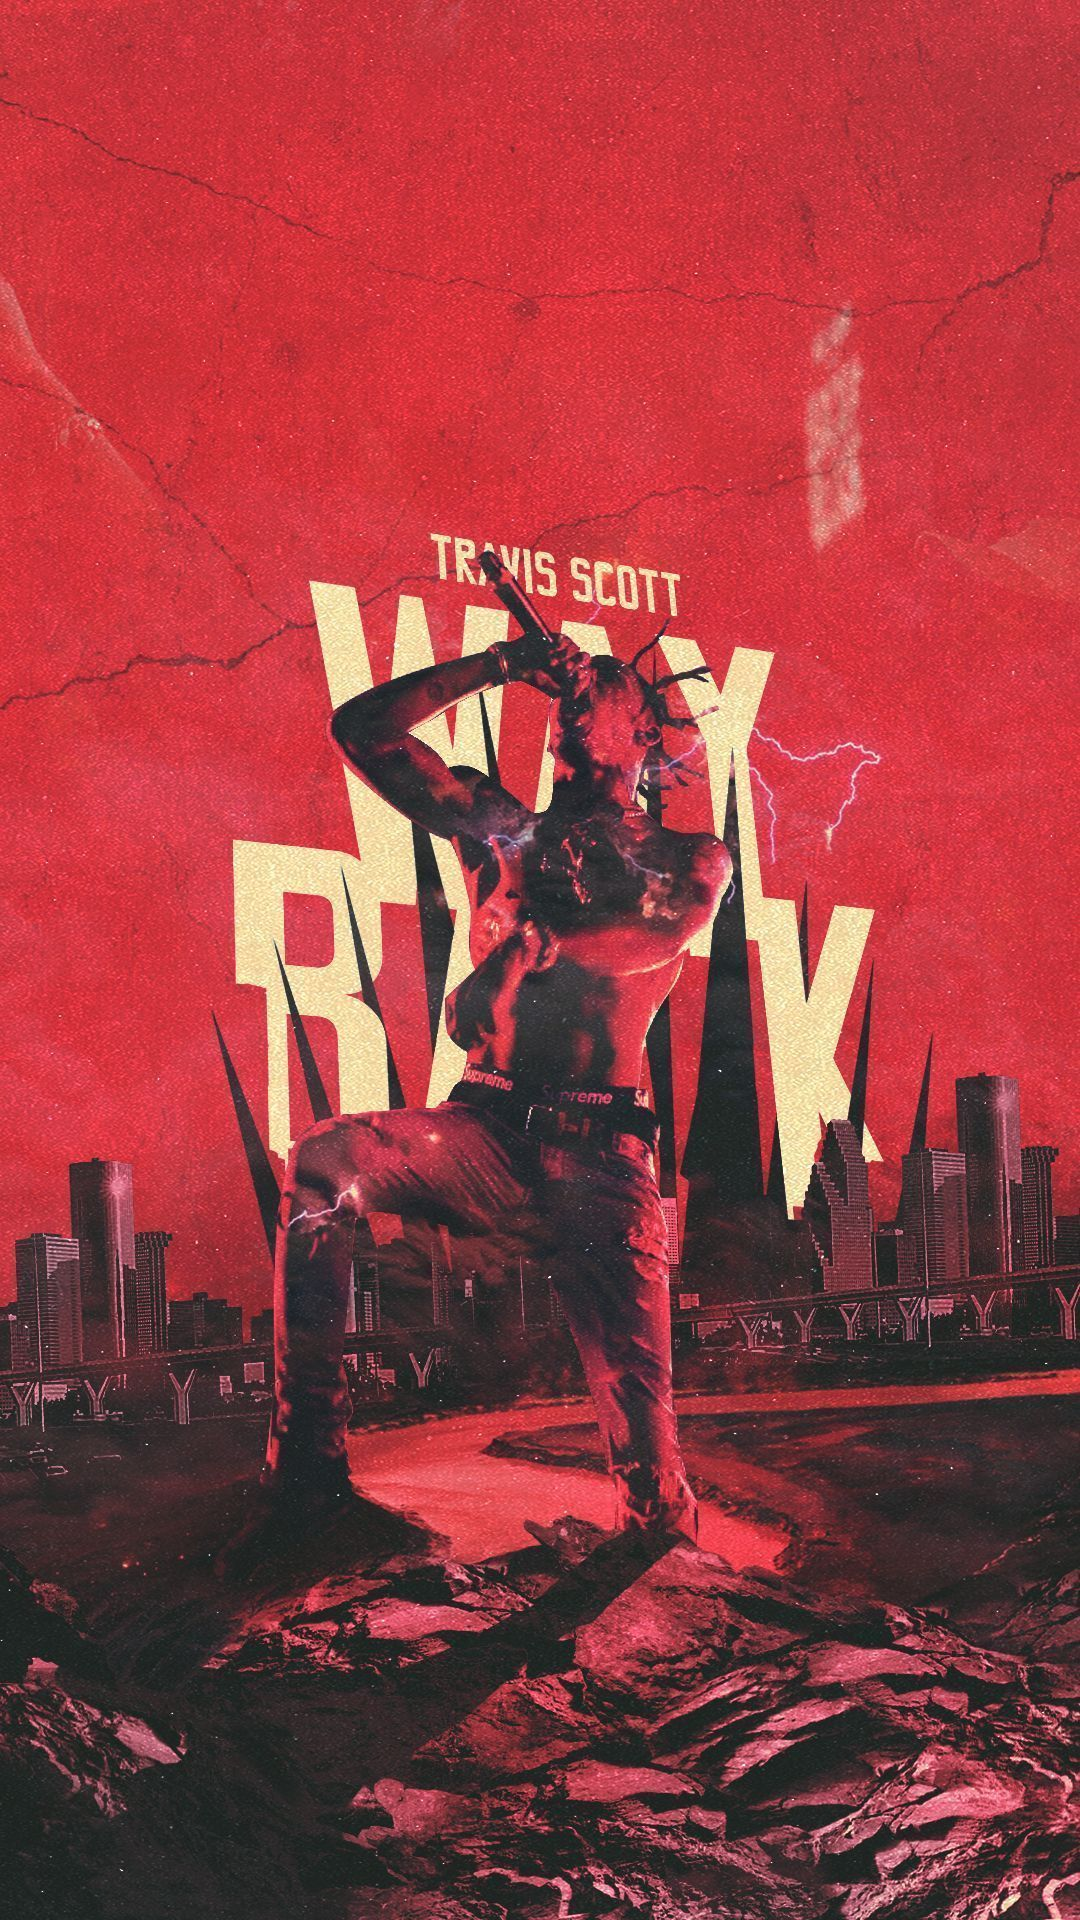 Way Back Travis Scott Wallpaper GETSLOWER #travisscottwallpapers Way Back Travis Scott Wallpaper GETSLOWER #travisscottwallpapers Way Back Travis Scott Wallpaper GETSLOWER #travisscottwallpapers Way Back Travis Scott Wallpaper GETSLOWER #travisscottwallpapers Way Back Travis Scott Wallpaper GETSLOWER #travisscottwallpapers Way Back Travis Scott Wallpaper GETSLOWER #travisscottwallpapers Way Back Travis Scott Wallpaper GETSLOWER #travisscottwallpapers Way Back Travis Scott Wallpaper GETSLOWER #tr #travisscottwallpapers